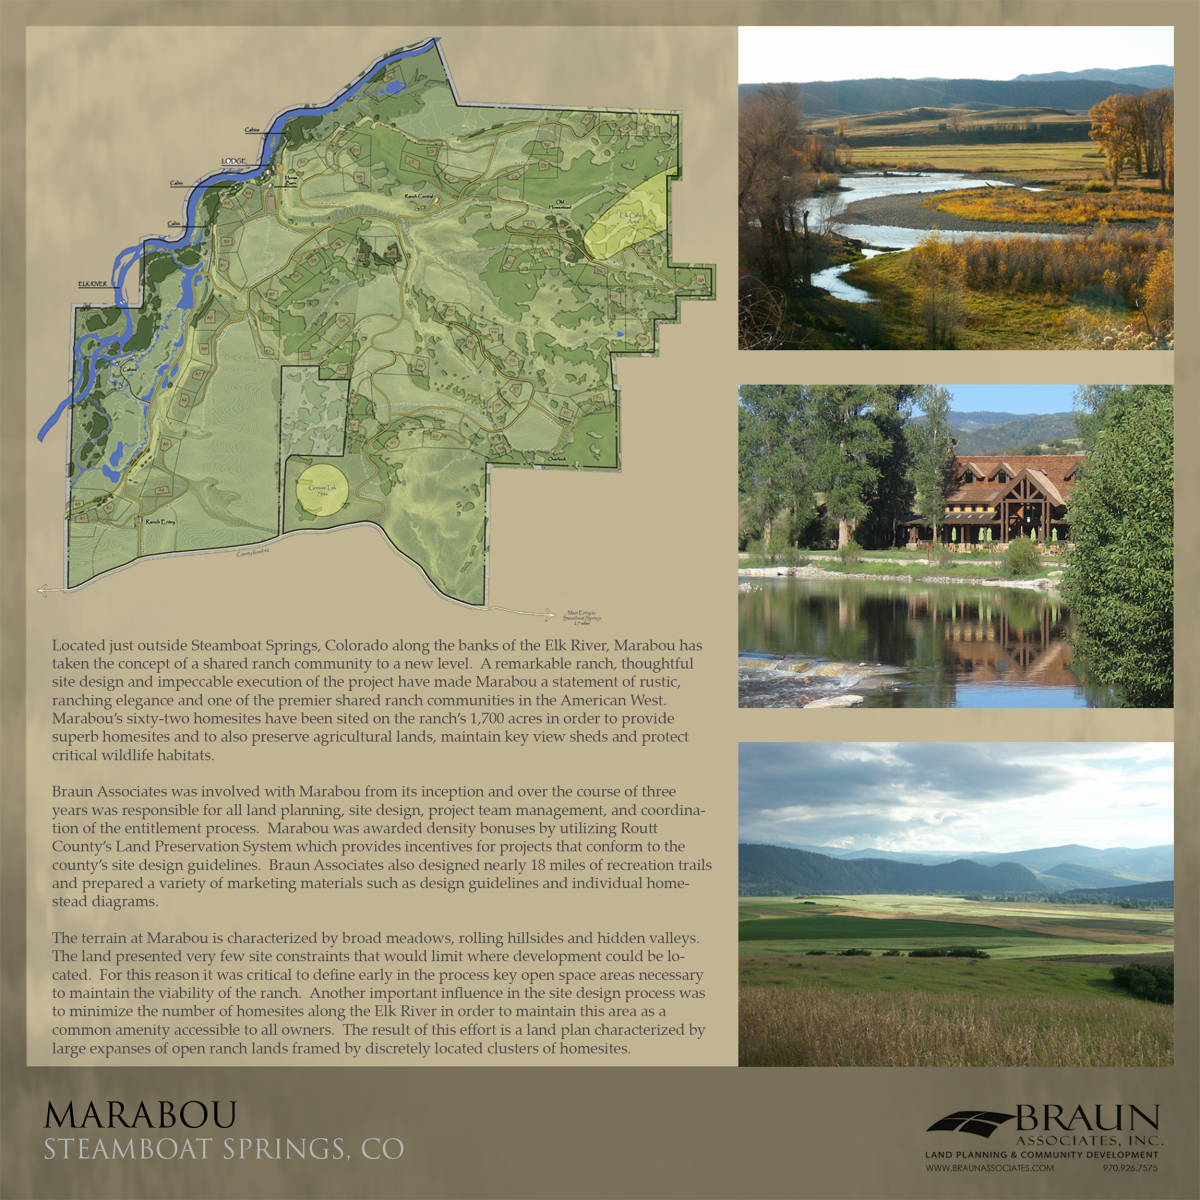 Marabou Ranch, Steamboat Springs CO